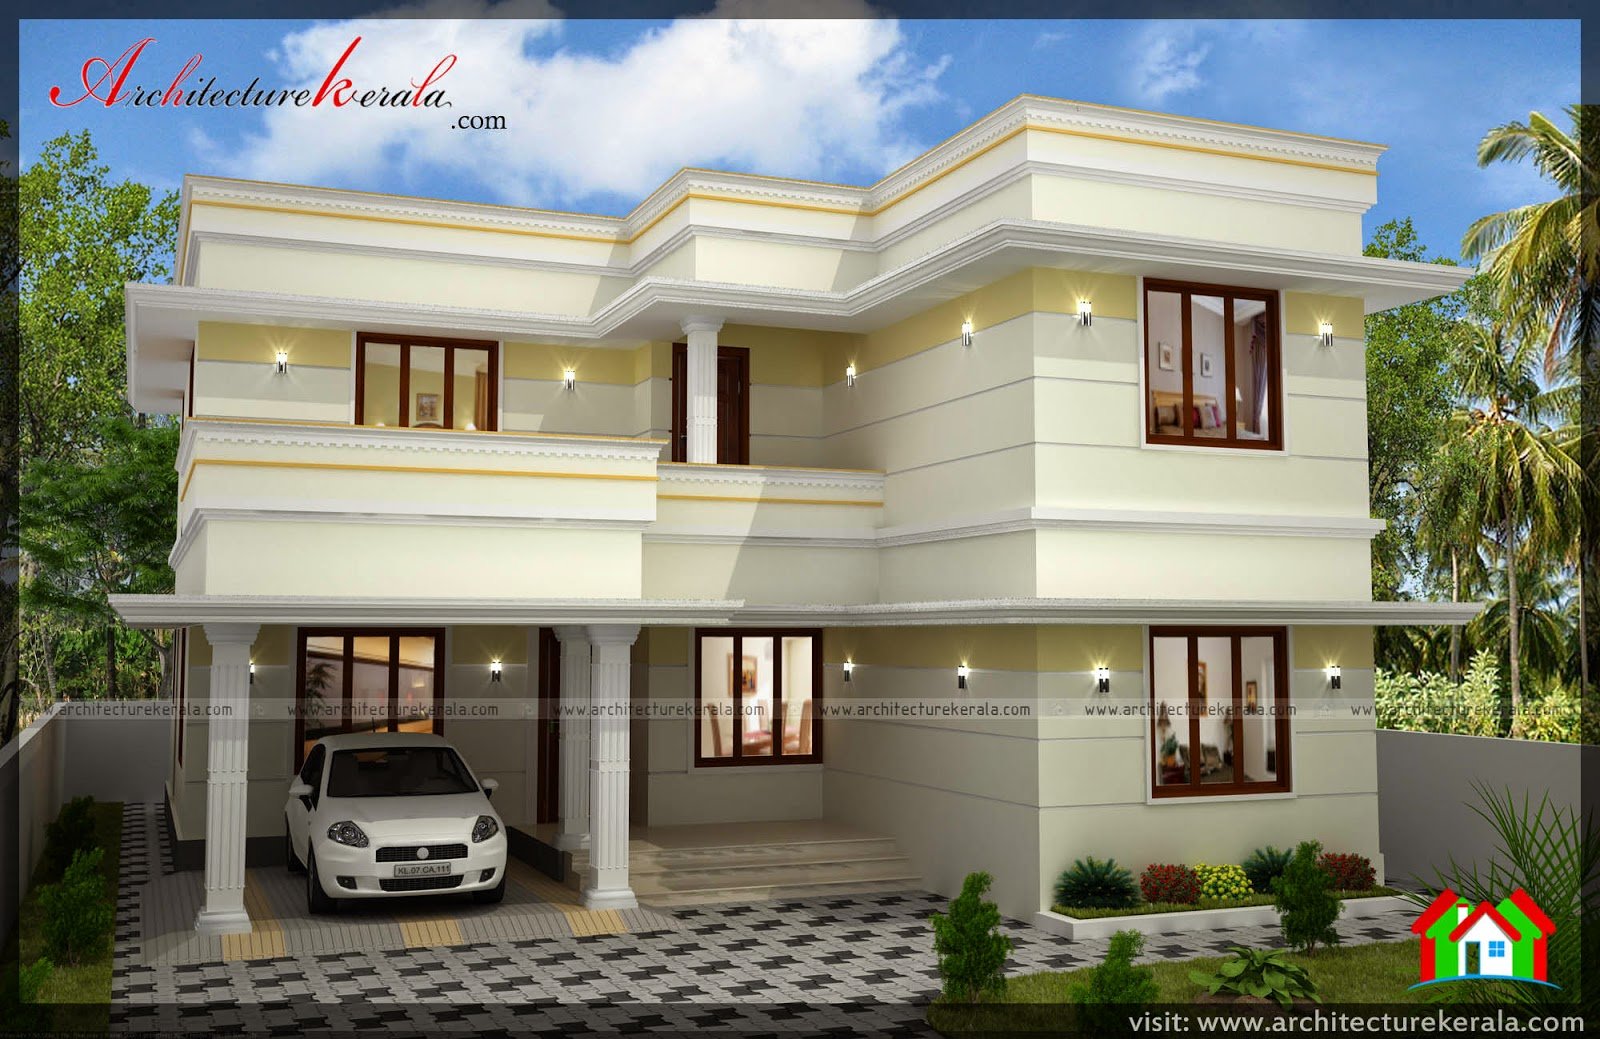 Three bedroom two storey house plan architecture kerala House plans two storey